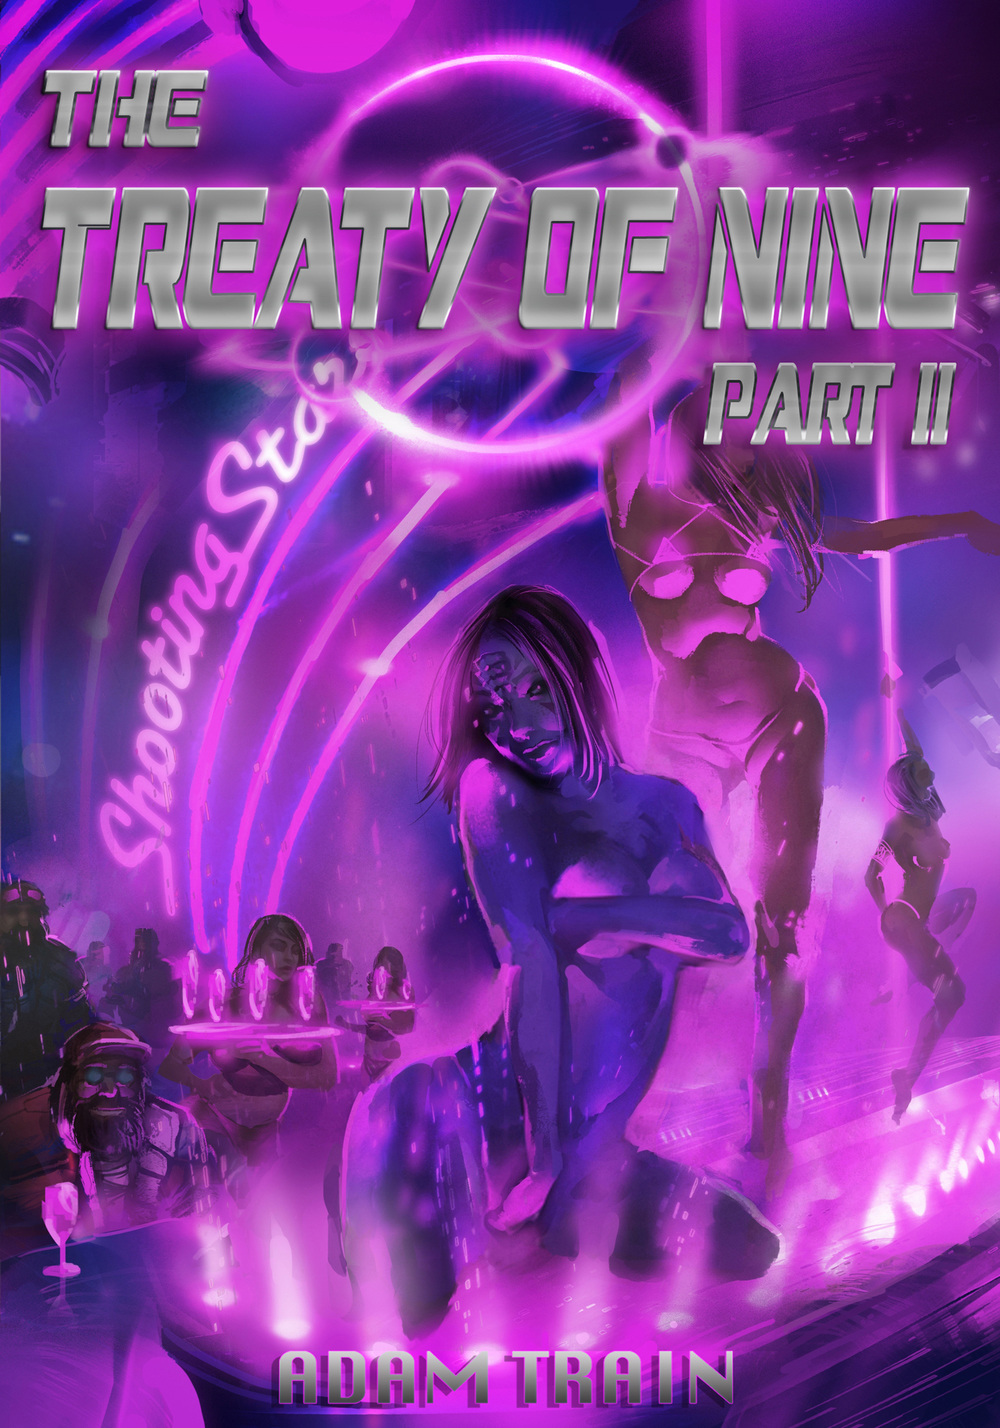 PART II This sprawling space tale continues with Part II. Ten years after the war, a growing threat to the treaty opens old battle wounds and drags an unsuspecting bunch into the struggle for peace.